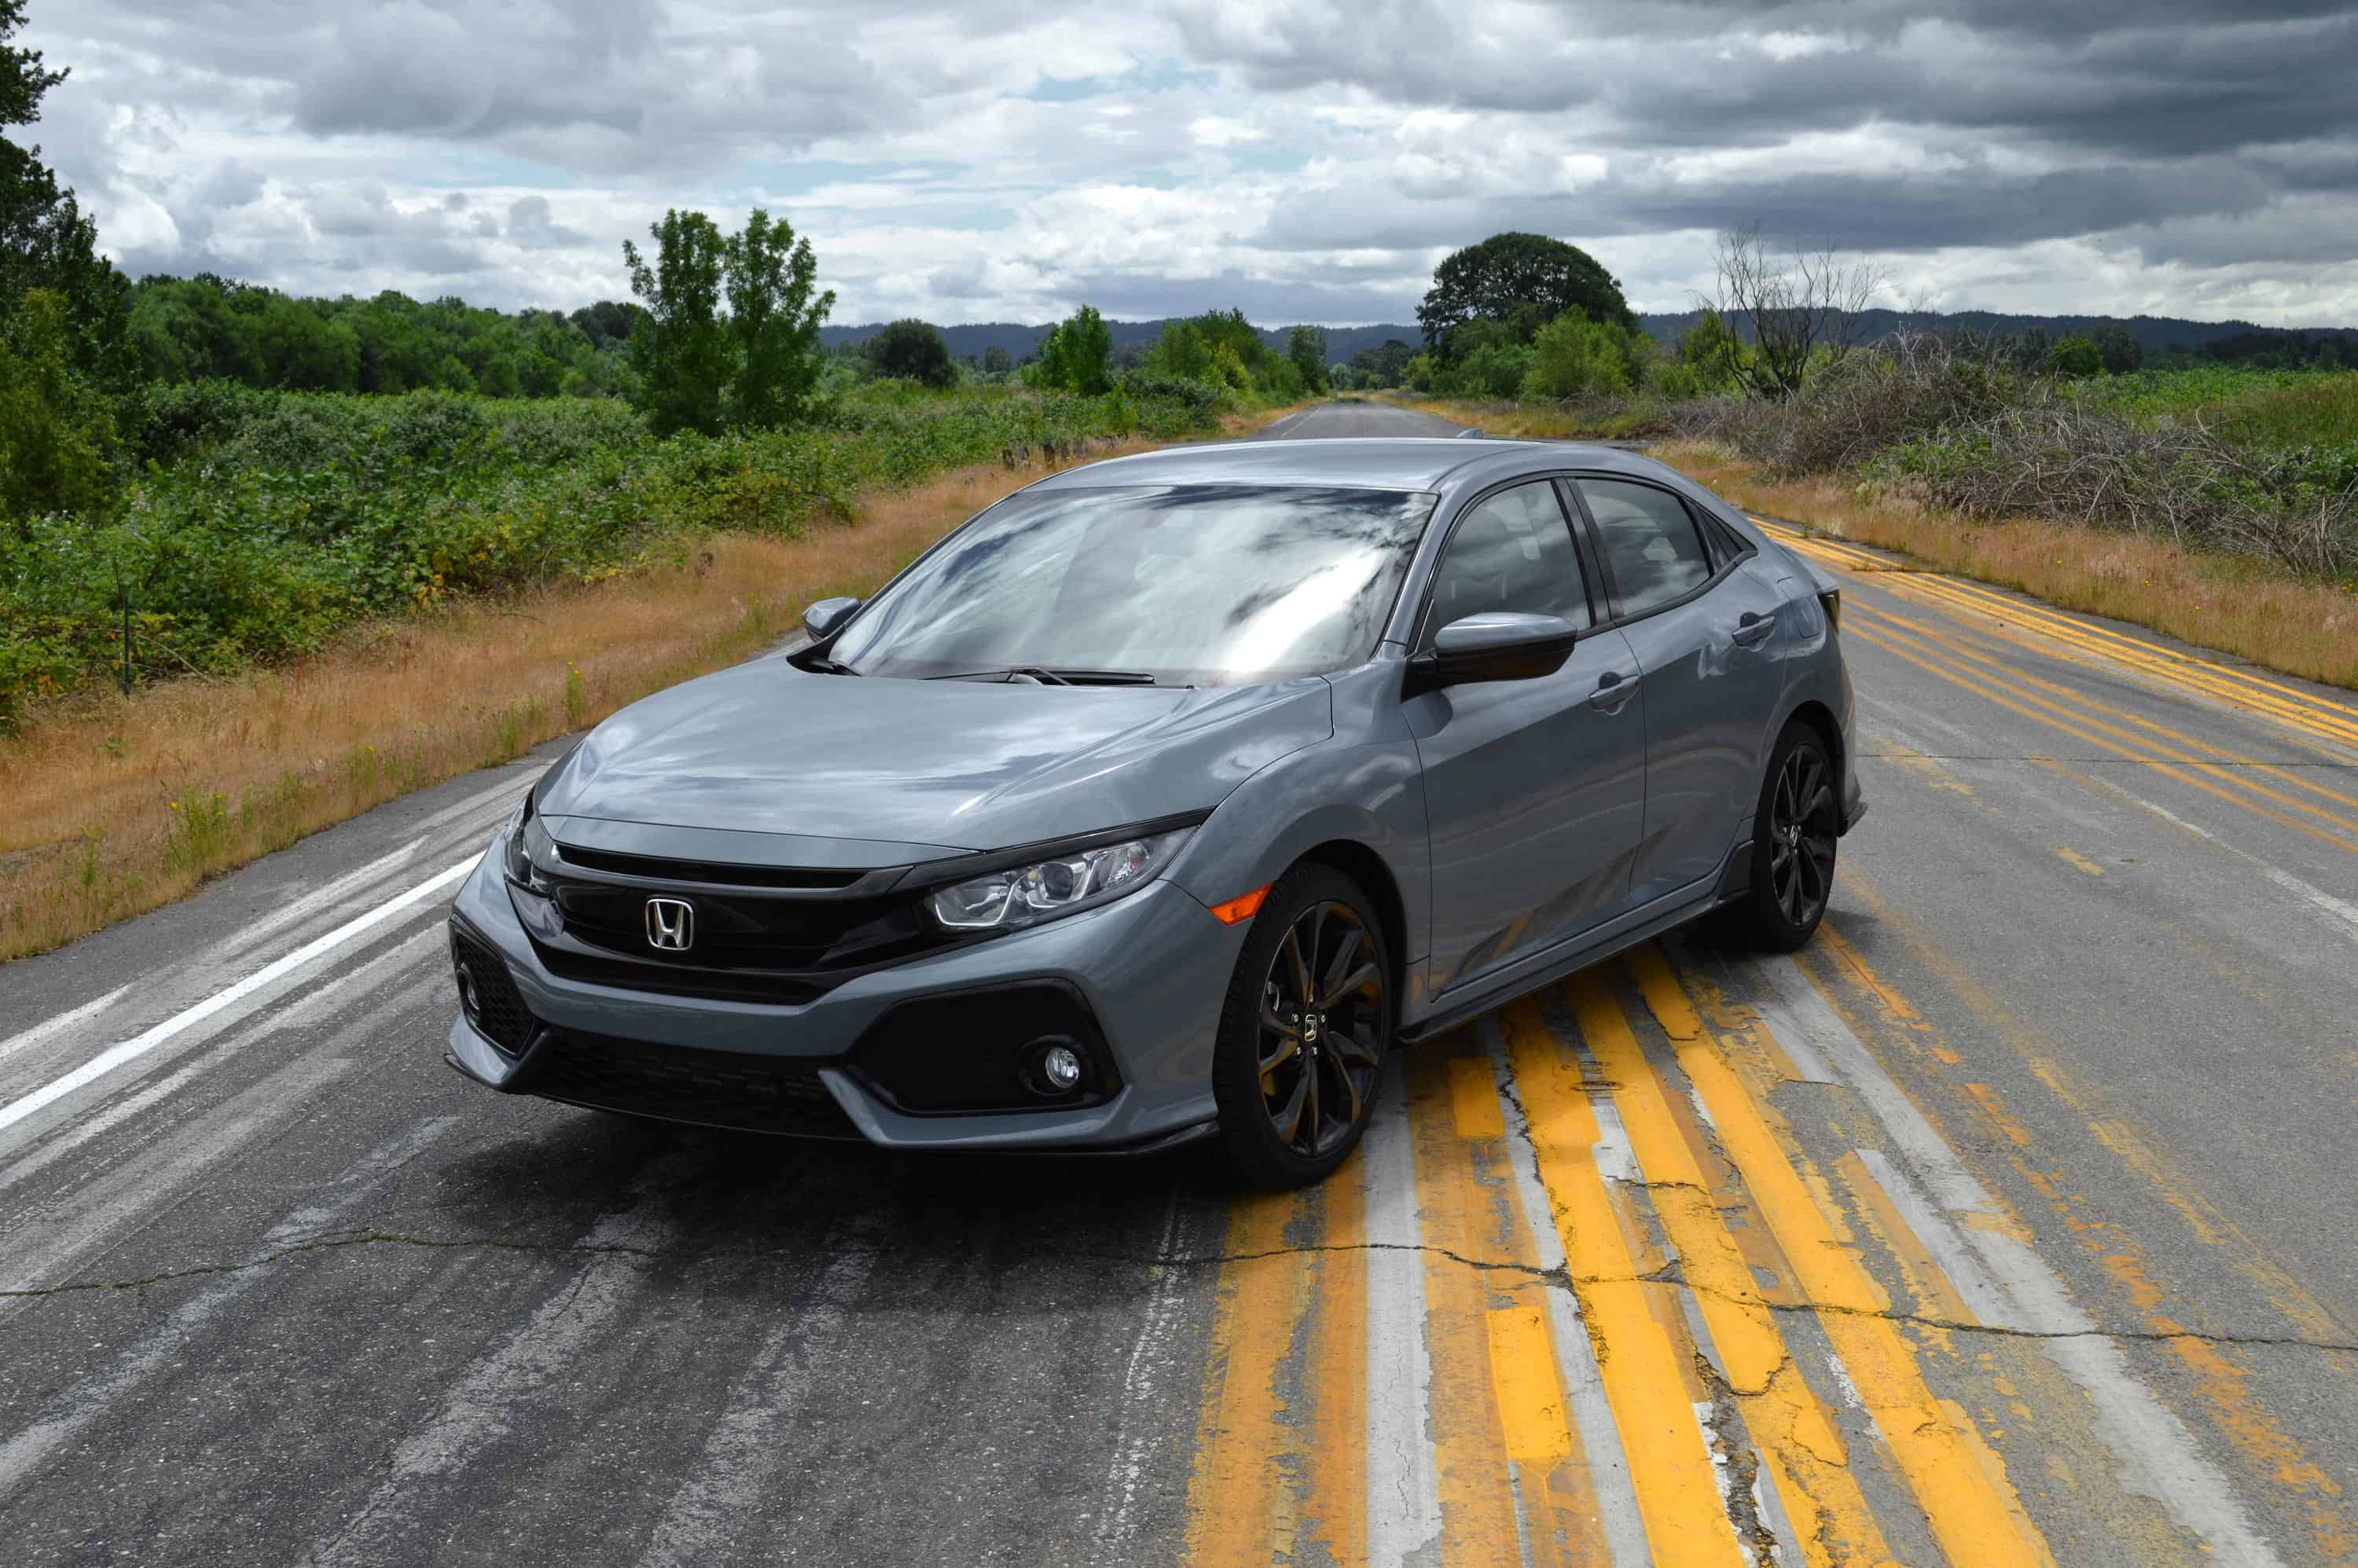 The Hard Lines Ounced Fenders And Smooth Roofline From Hood To End Of Hatch Tell You That Civic Hatchback Is Here Party But Then There S